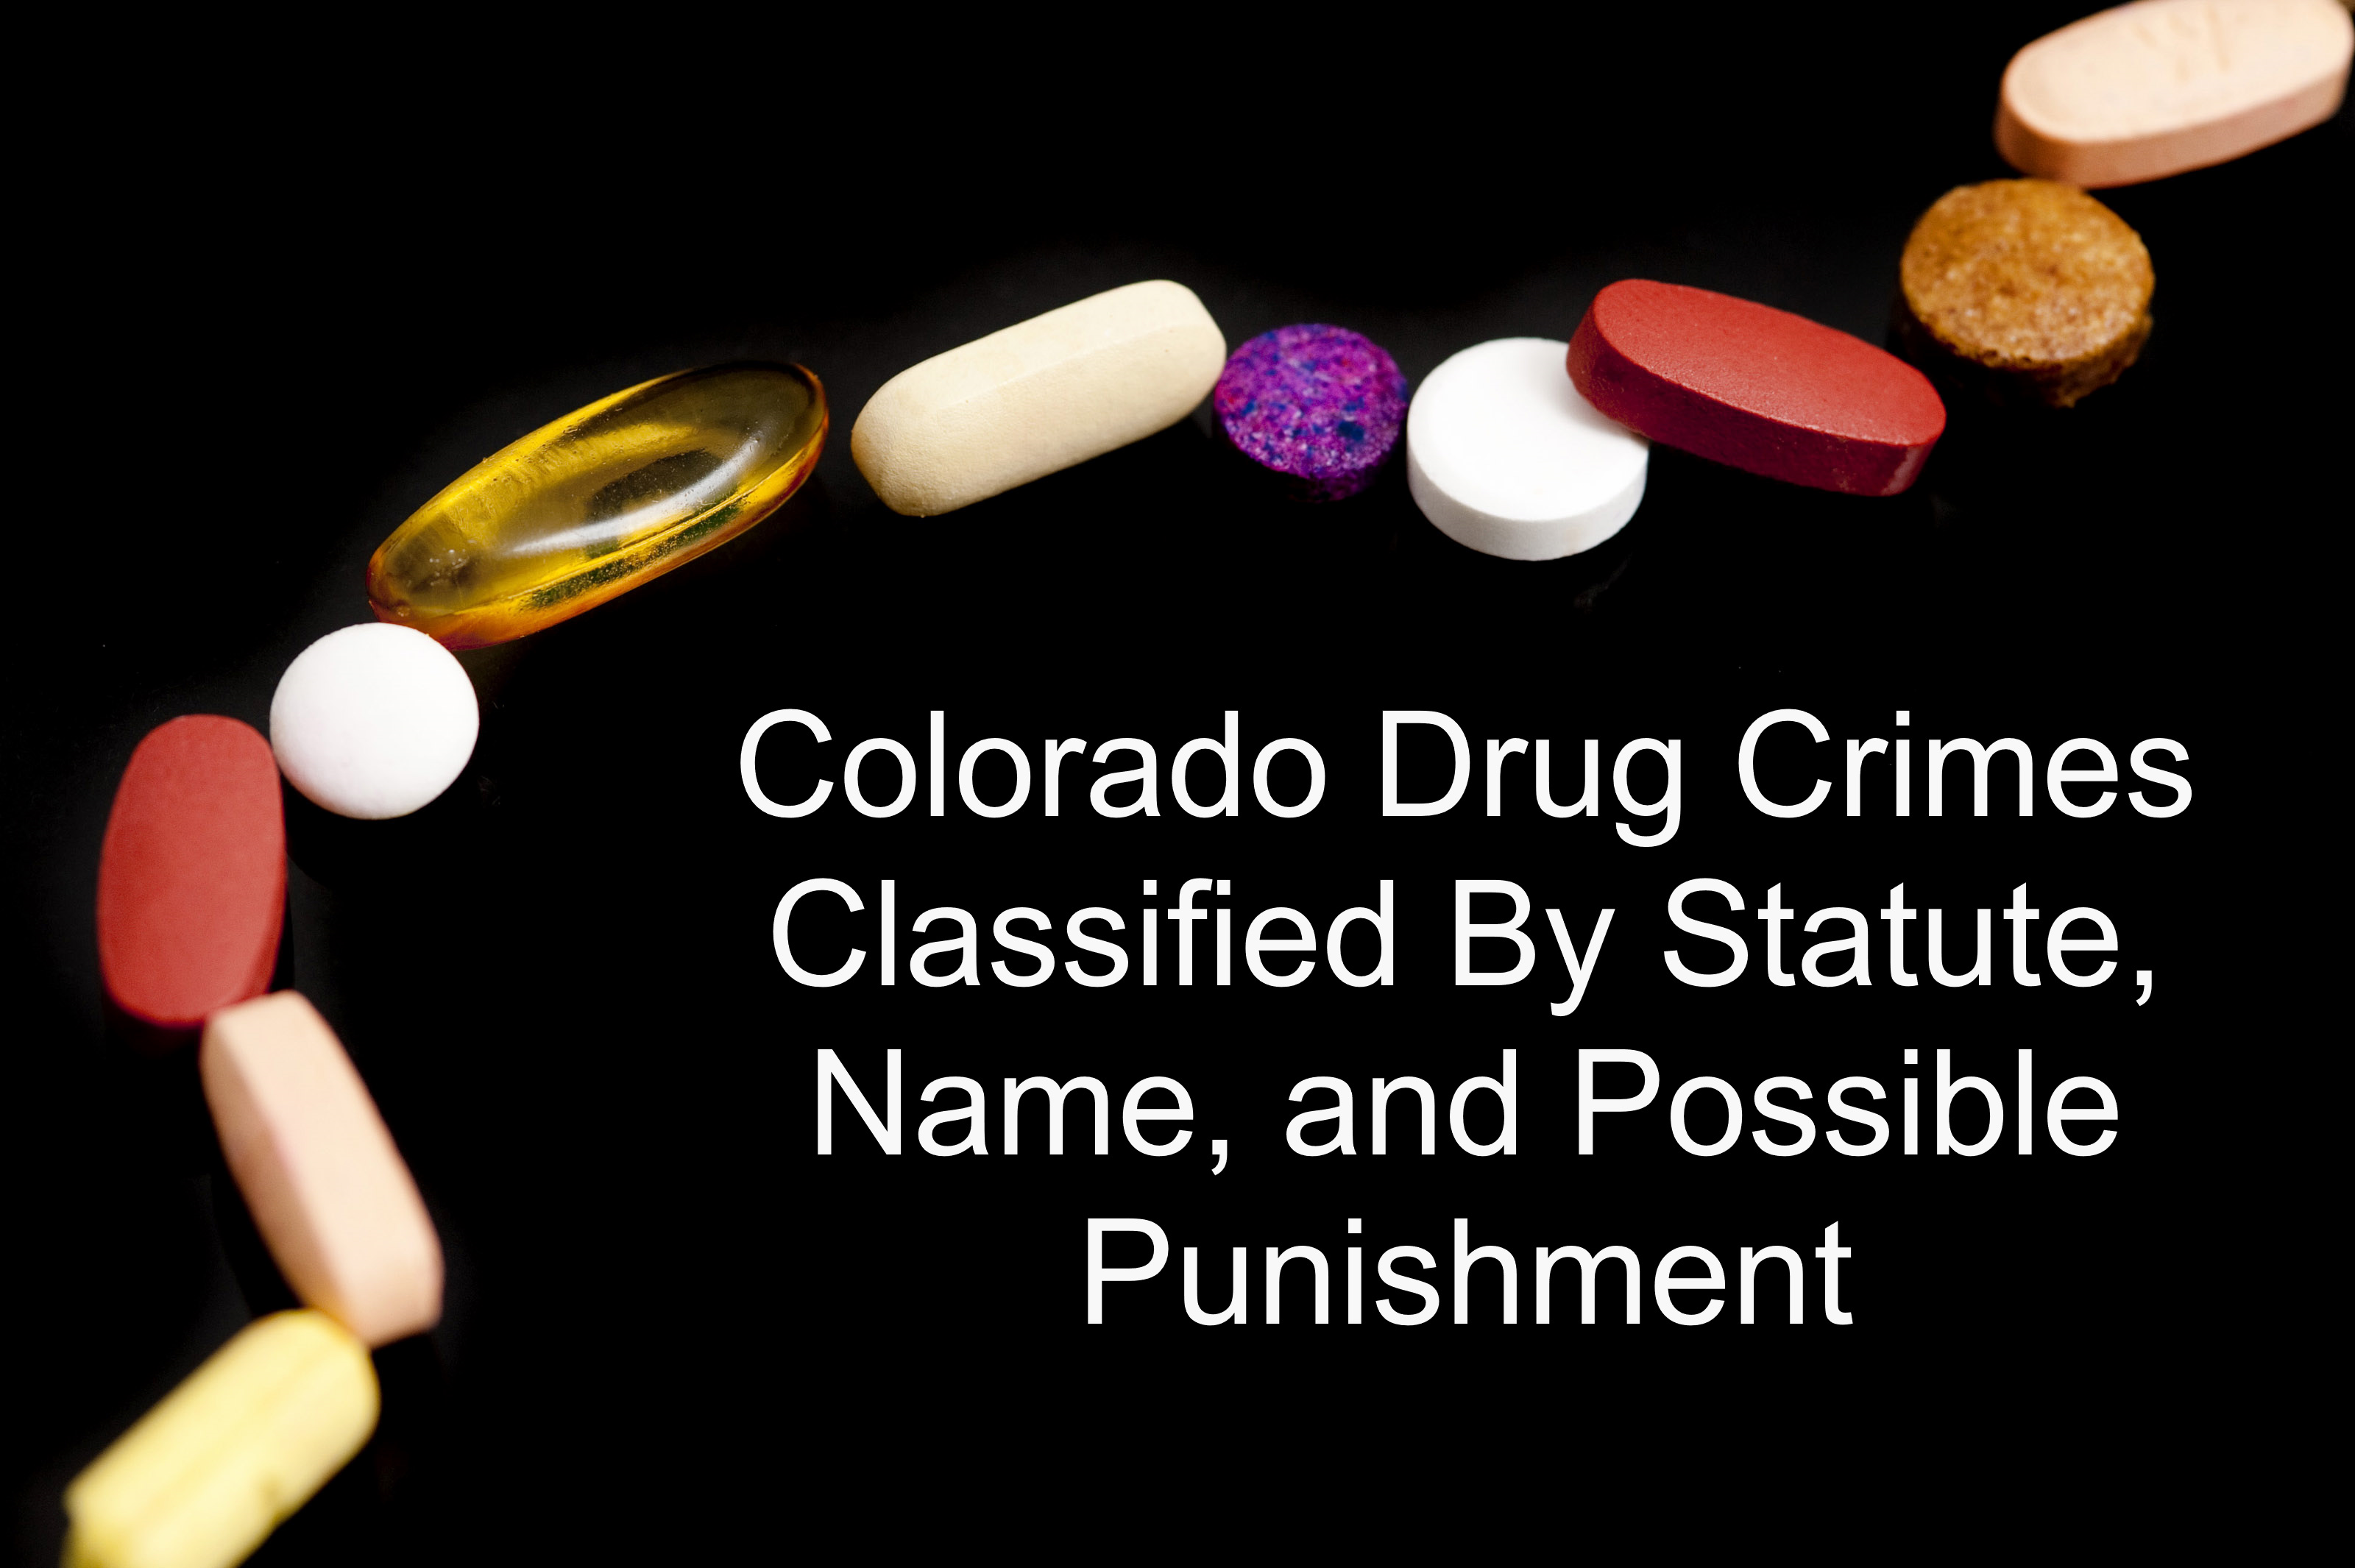 Colorado Drug Crimes Classified By Statute, Name, and Possible Punishment.